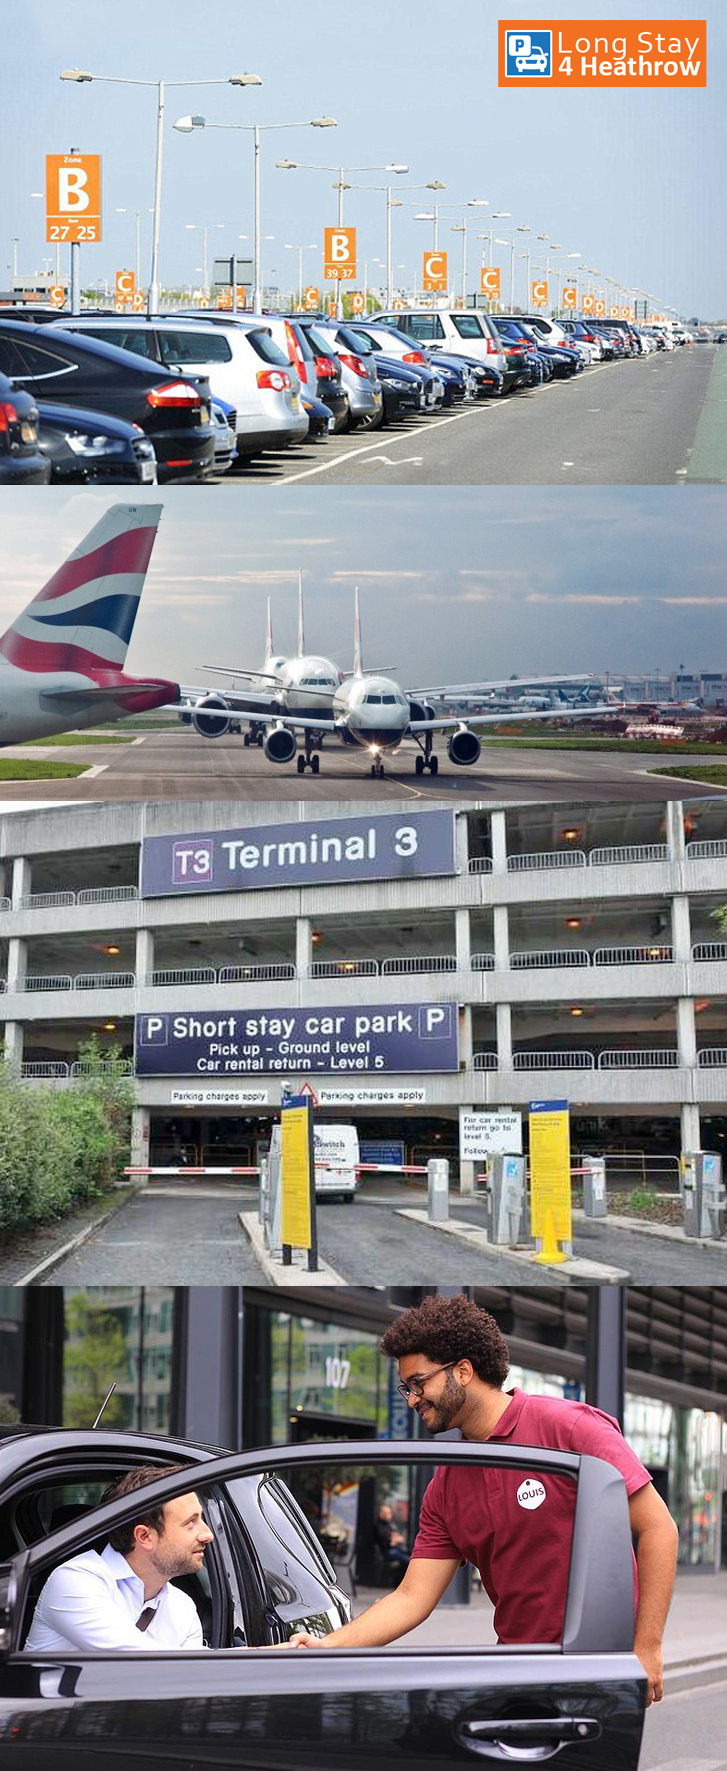 Heathrow airport an introduction to car parking businessparking heathrow airport an introduction to car parking businessparking heathrowairport heathrowterminalparking kristyandbryce Image collections